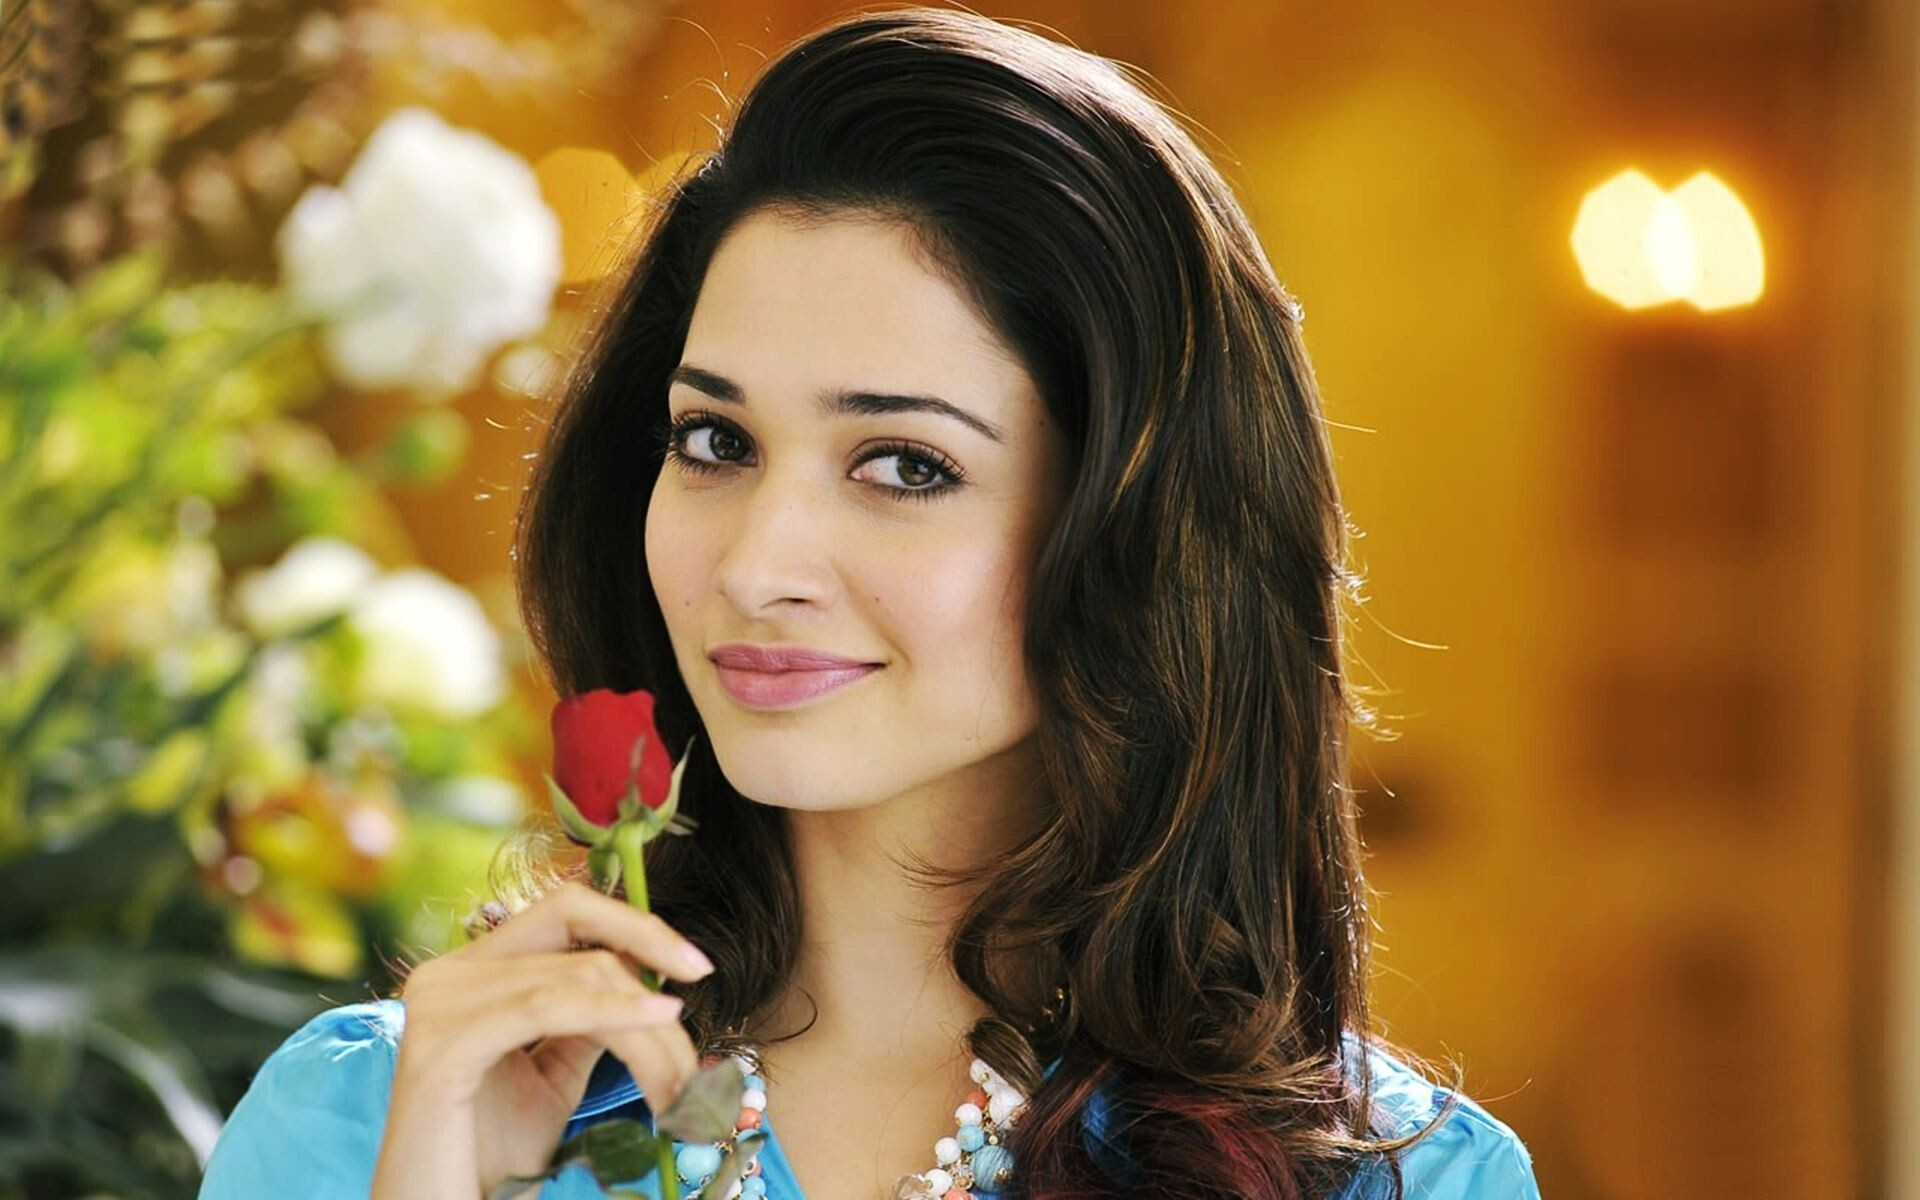 tamannaah bhatia indian actress hd wallpapers | hd wallpapers